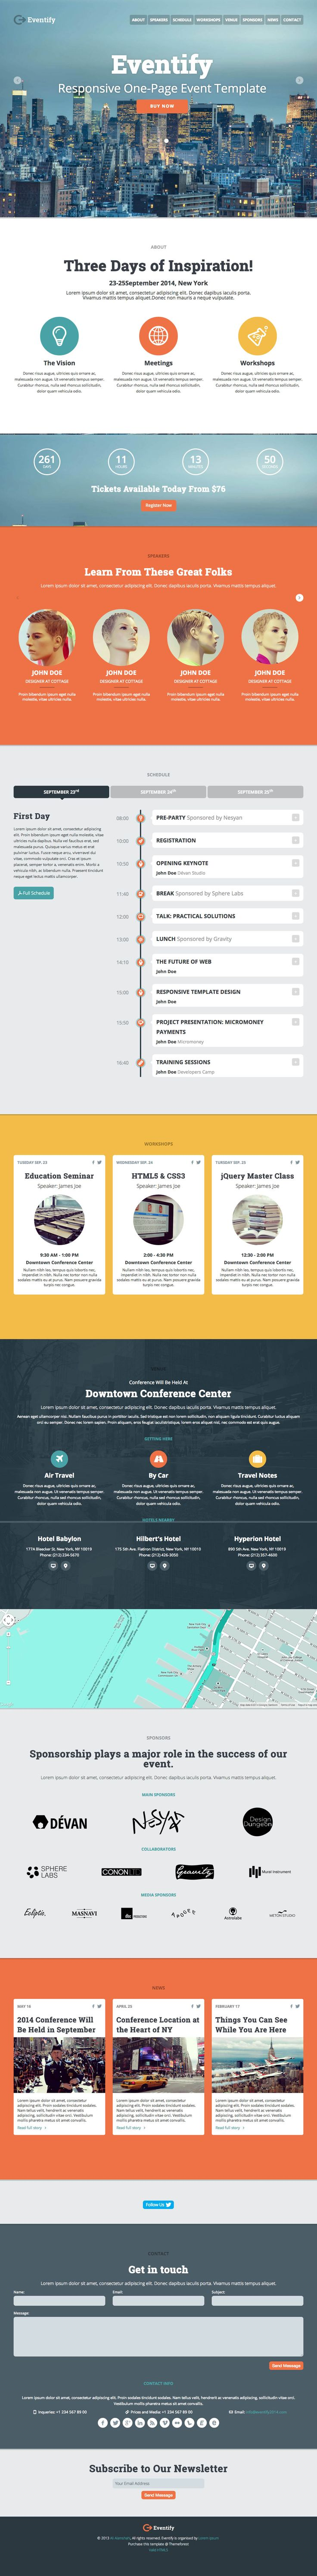 'Eventify' is a new $14 one page template aimed at events or conferences. The template includes a very complete set of sections for detailing information about the event. What is particularly nice is the schedule section - which combines a tabbed controller for conference days with a vertical timeline listing out the day's sessions.